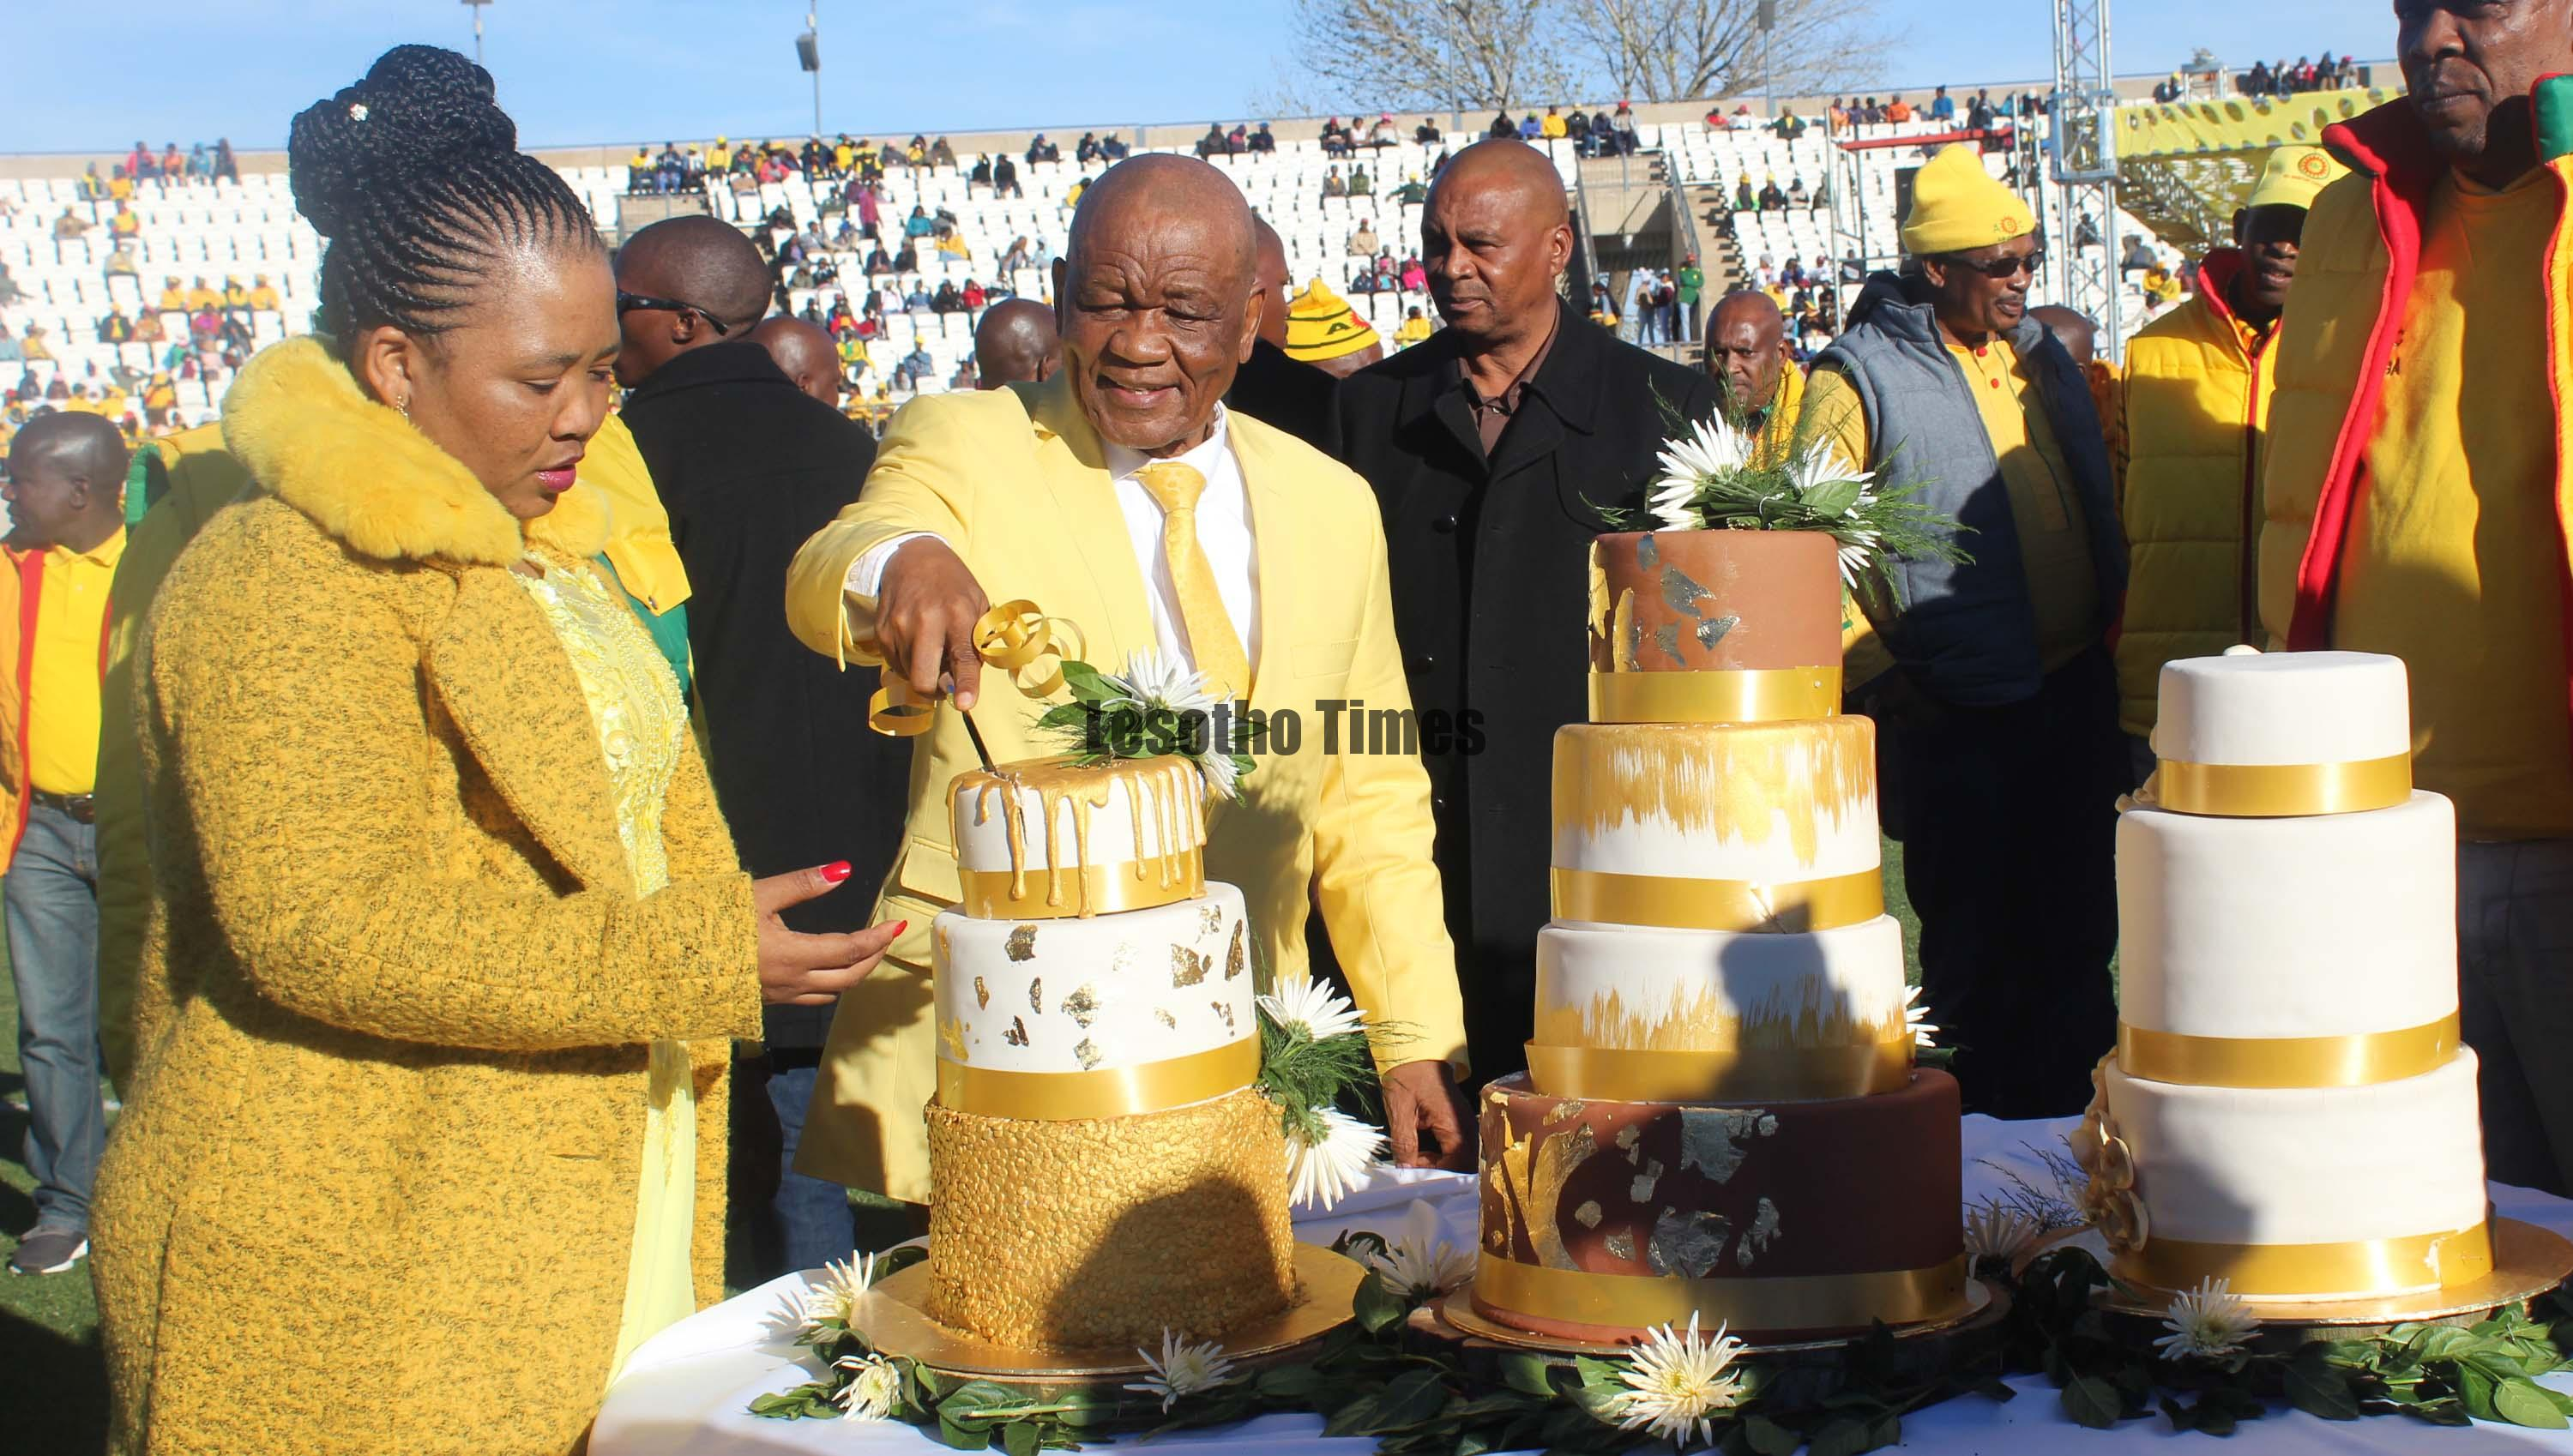 Pm Turns Into Comedian Dancer Lesotho Times